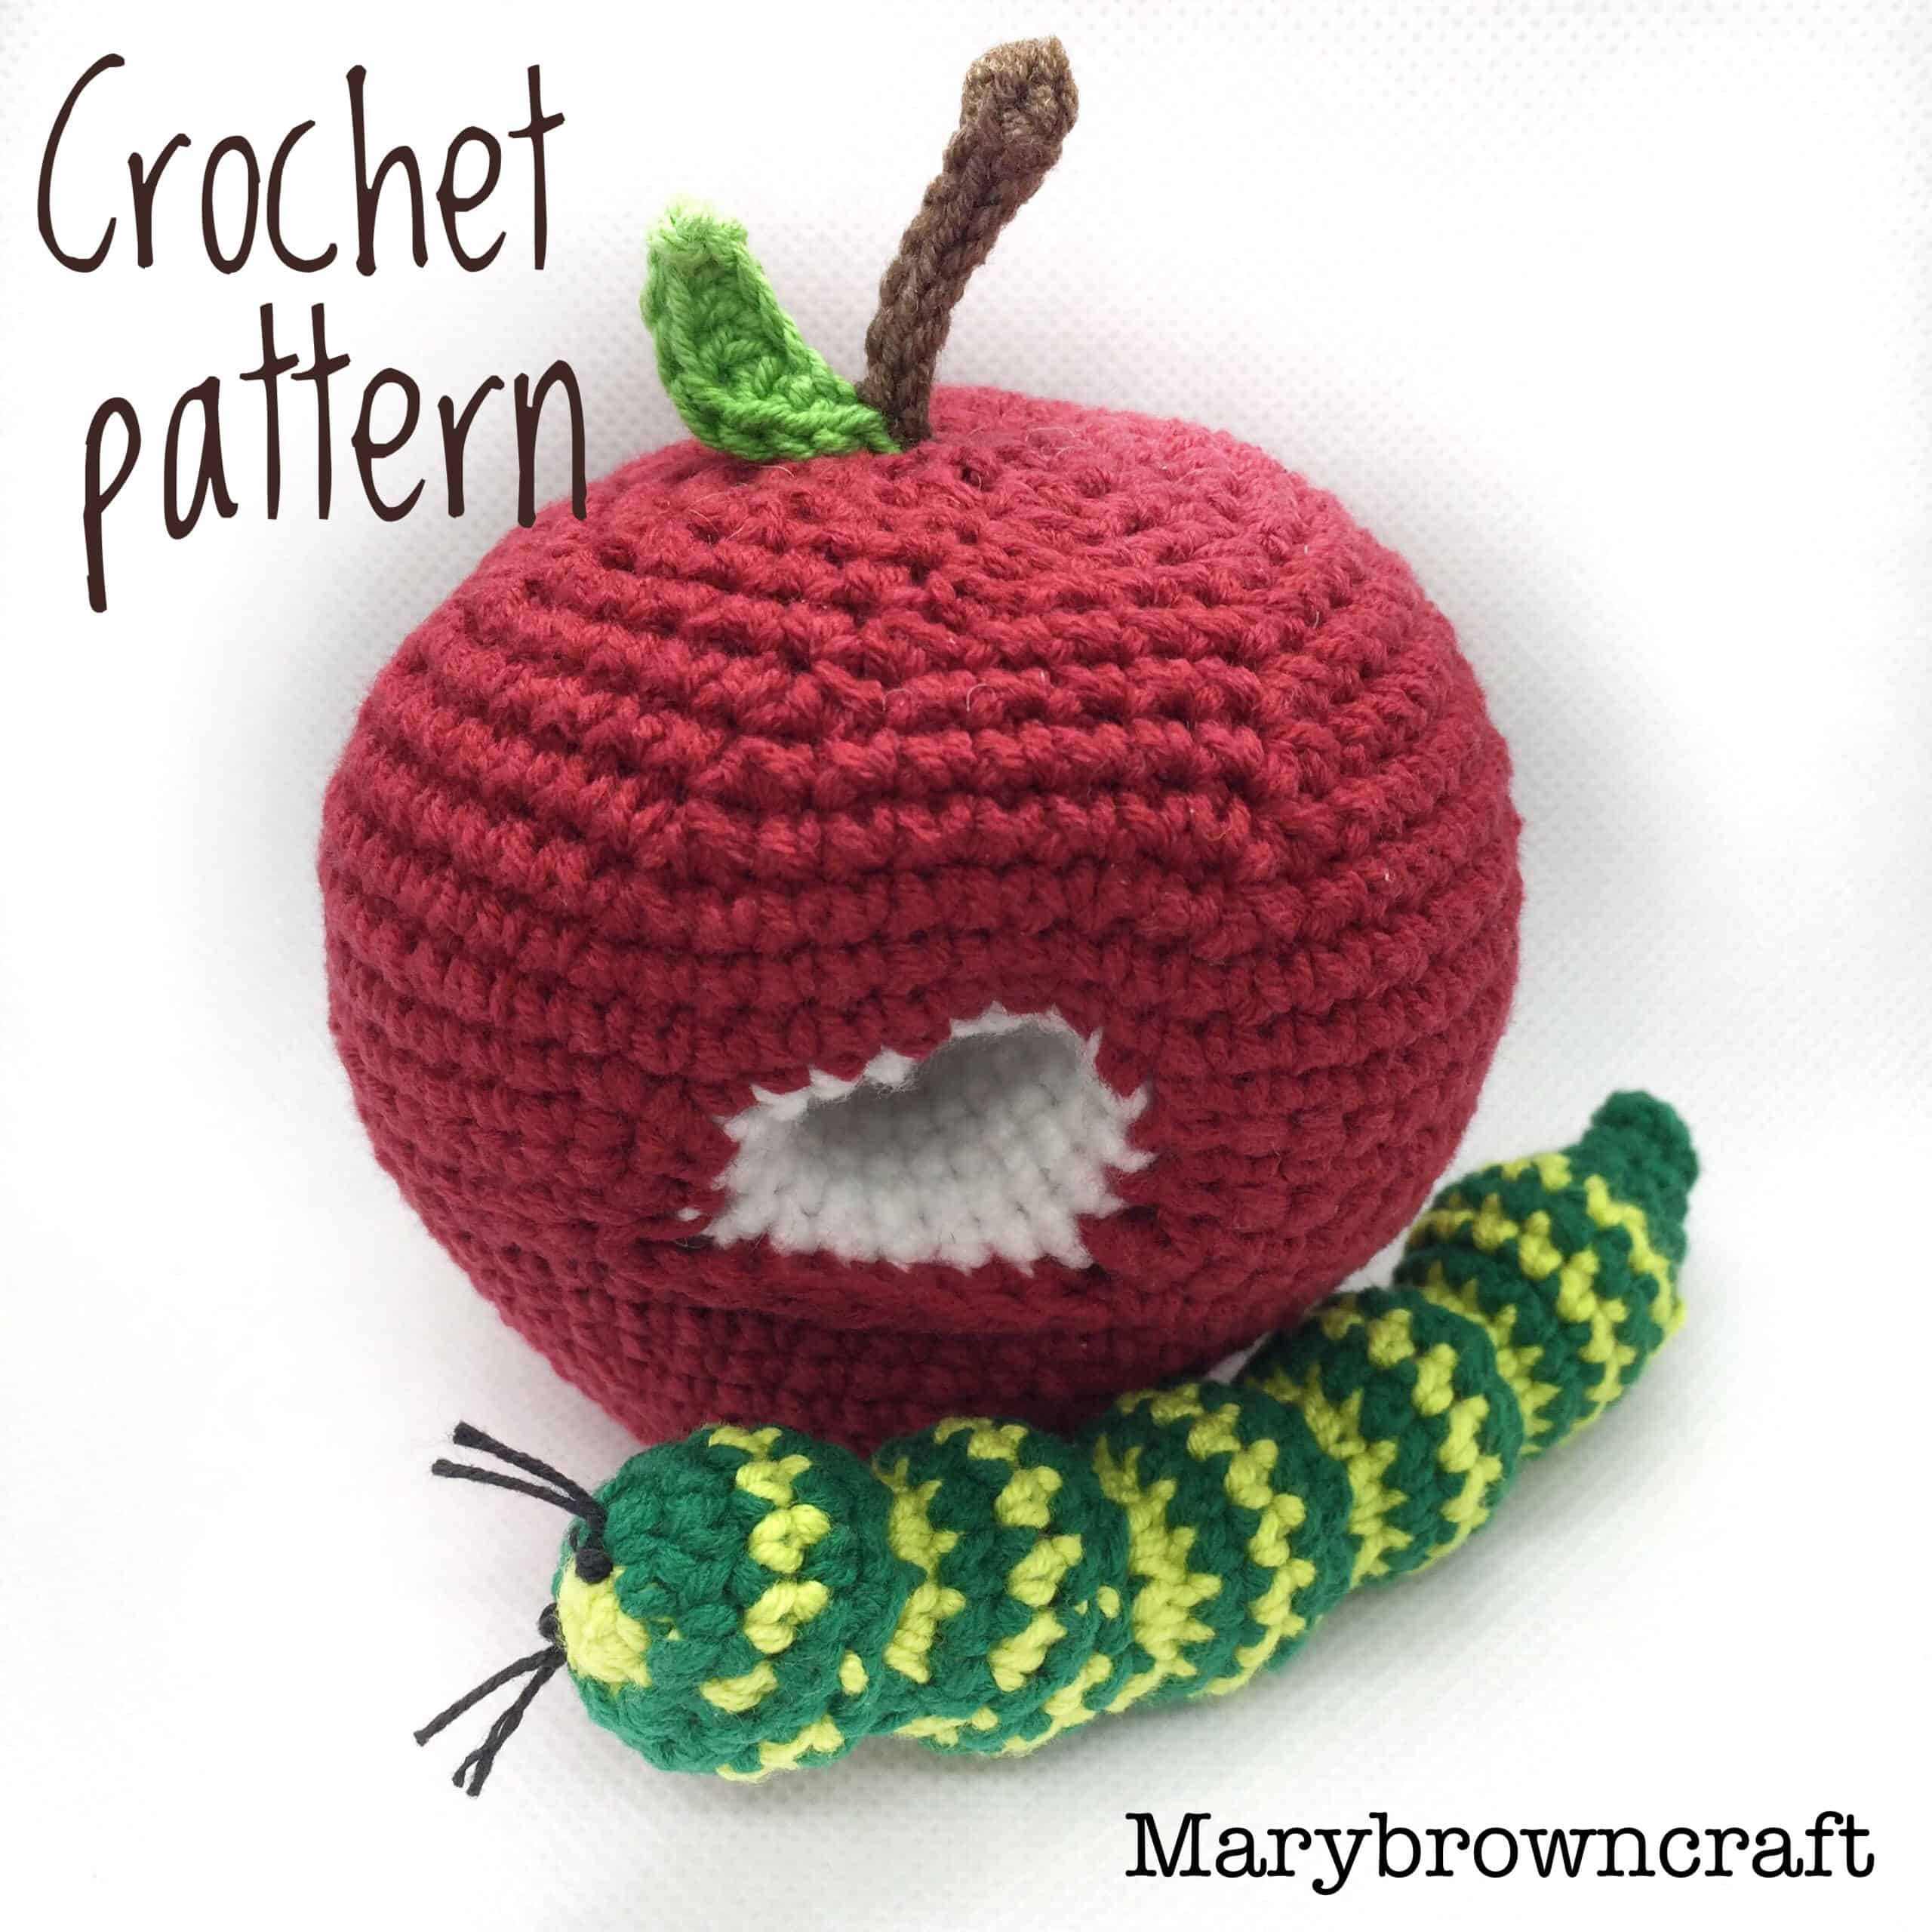 Crocheted apple with a worm